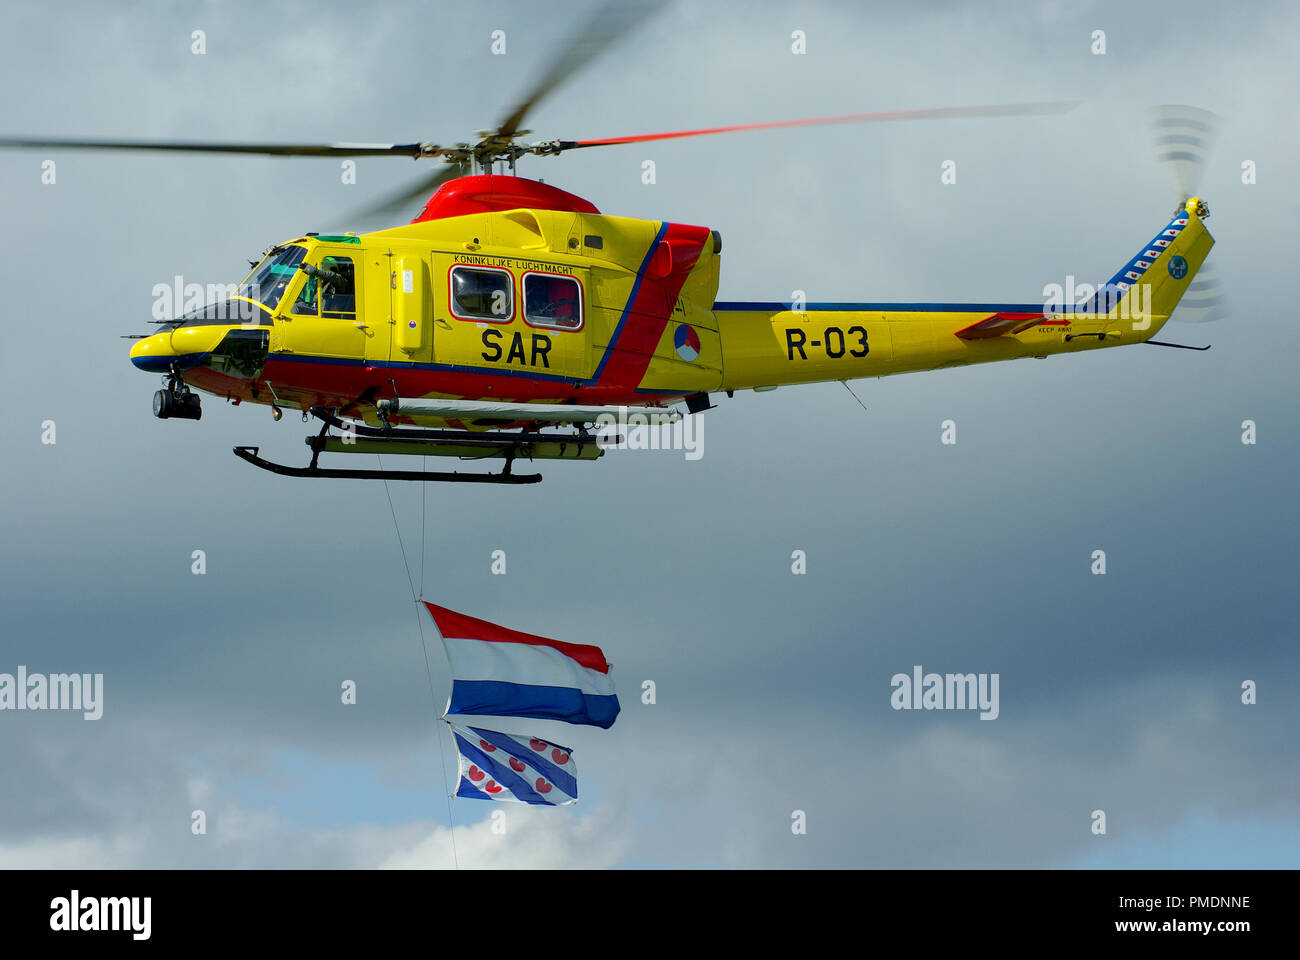 Royal Netherlands Air Force SAR Search and Rescue helicopter  303